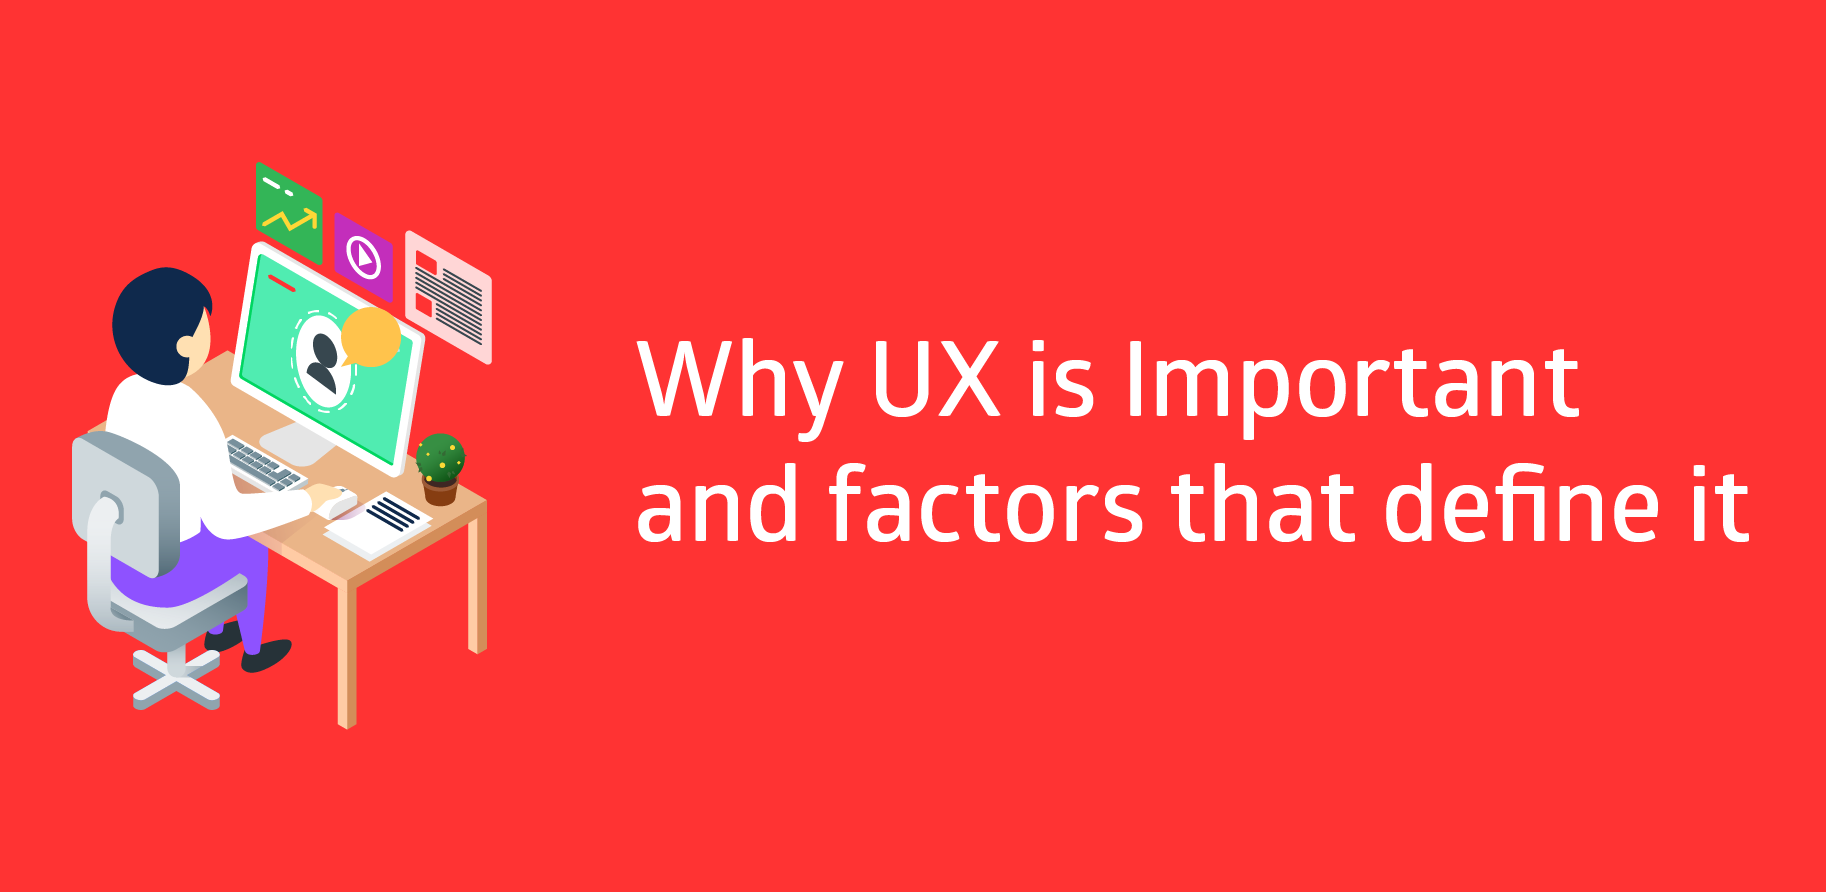 why ux is important factors